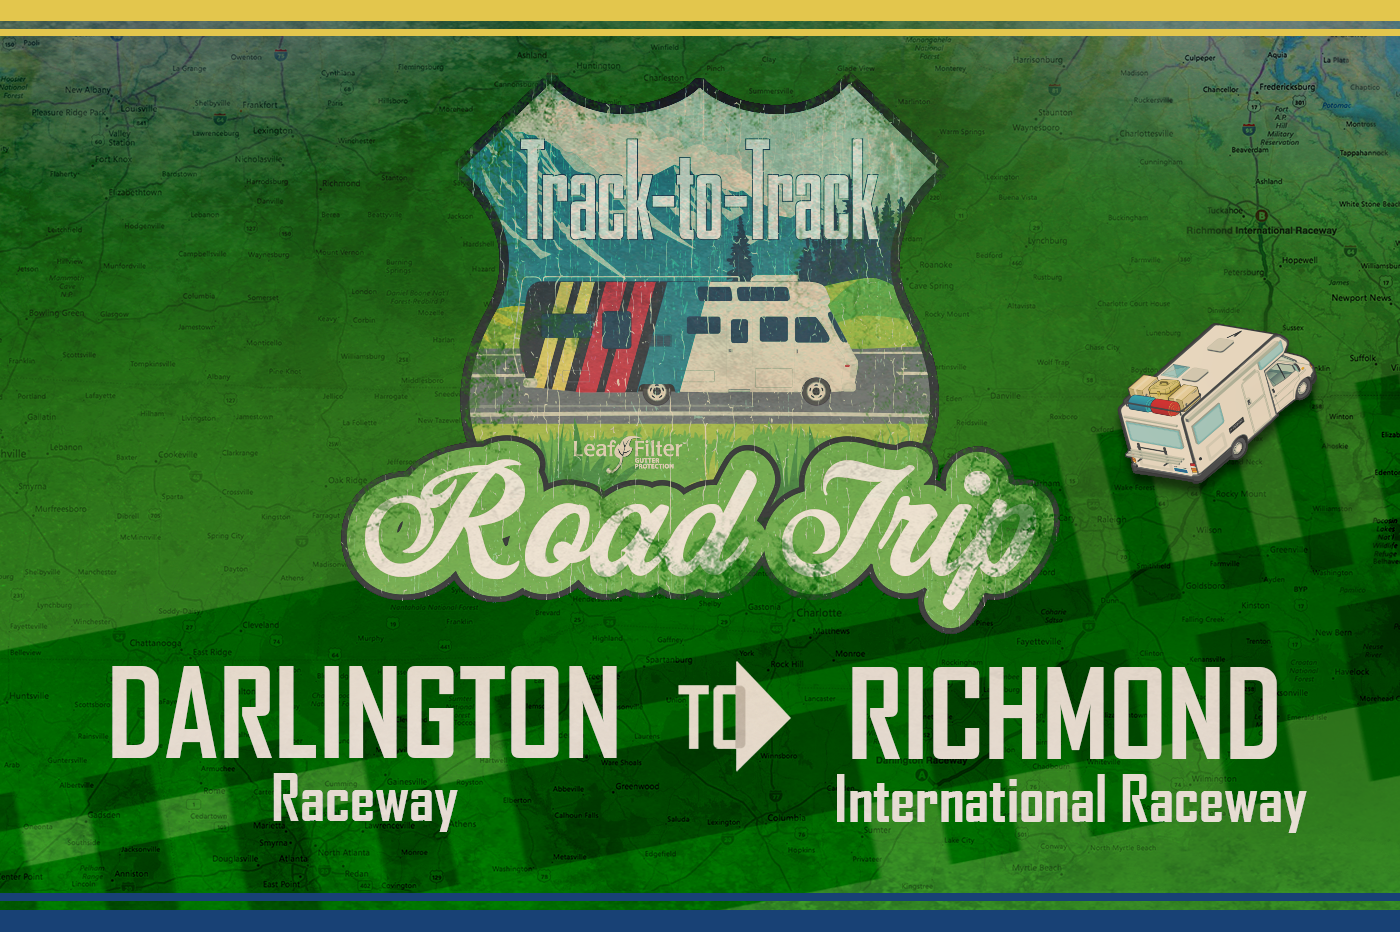 Track-to-Track Road Trip Part 11: SC to VA | LeafFilter Racing